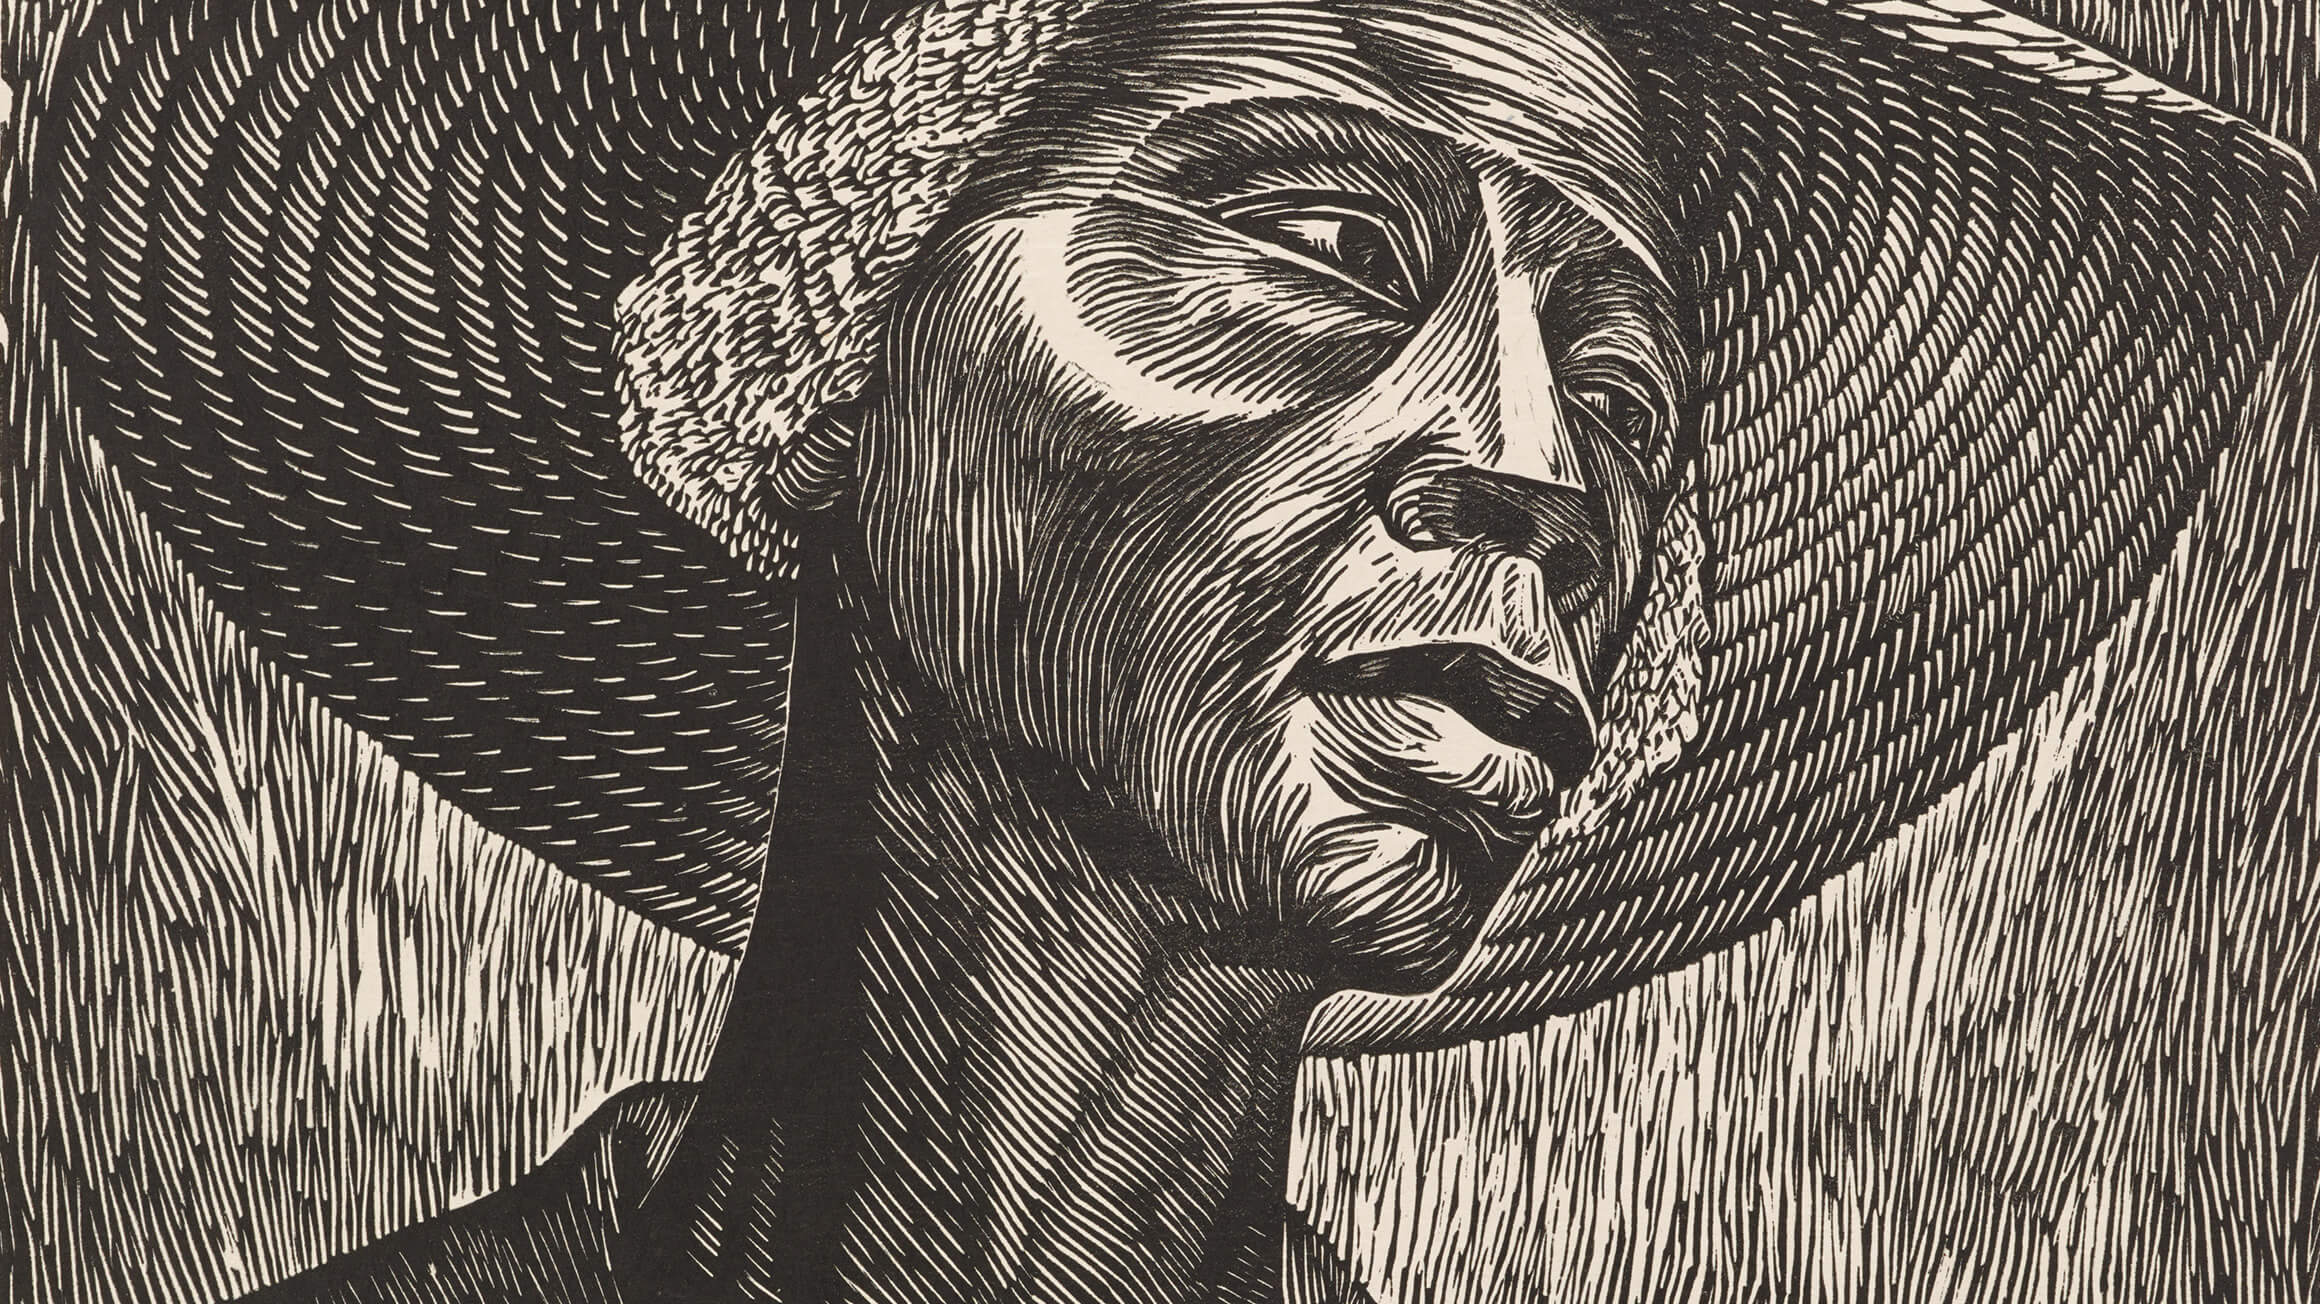 Sharecropper, 1952, by Elizabeth Catlett